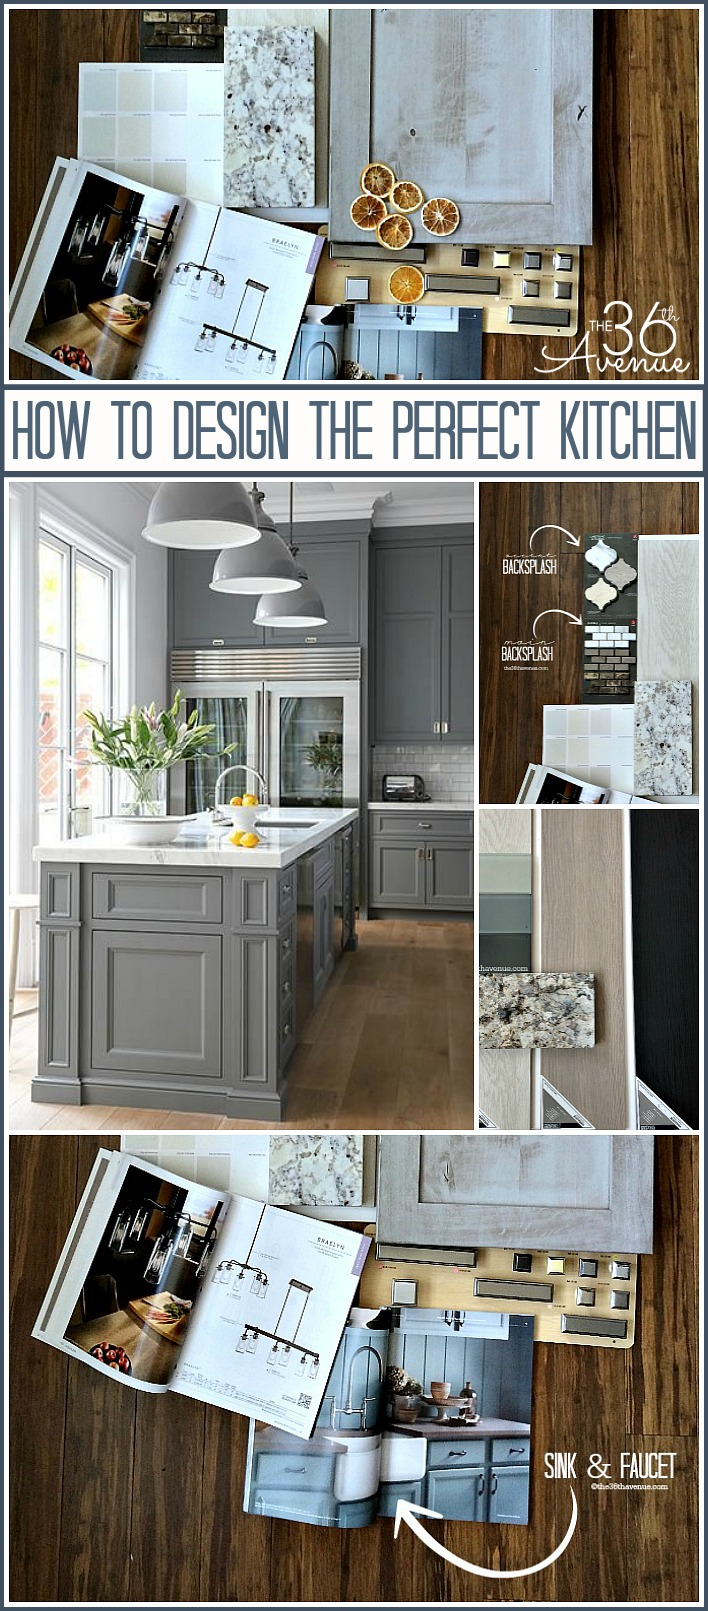 Kitchen Decor and Design Tips at the36thavenue.com